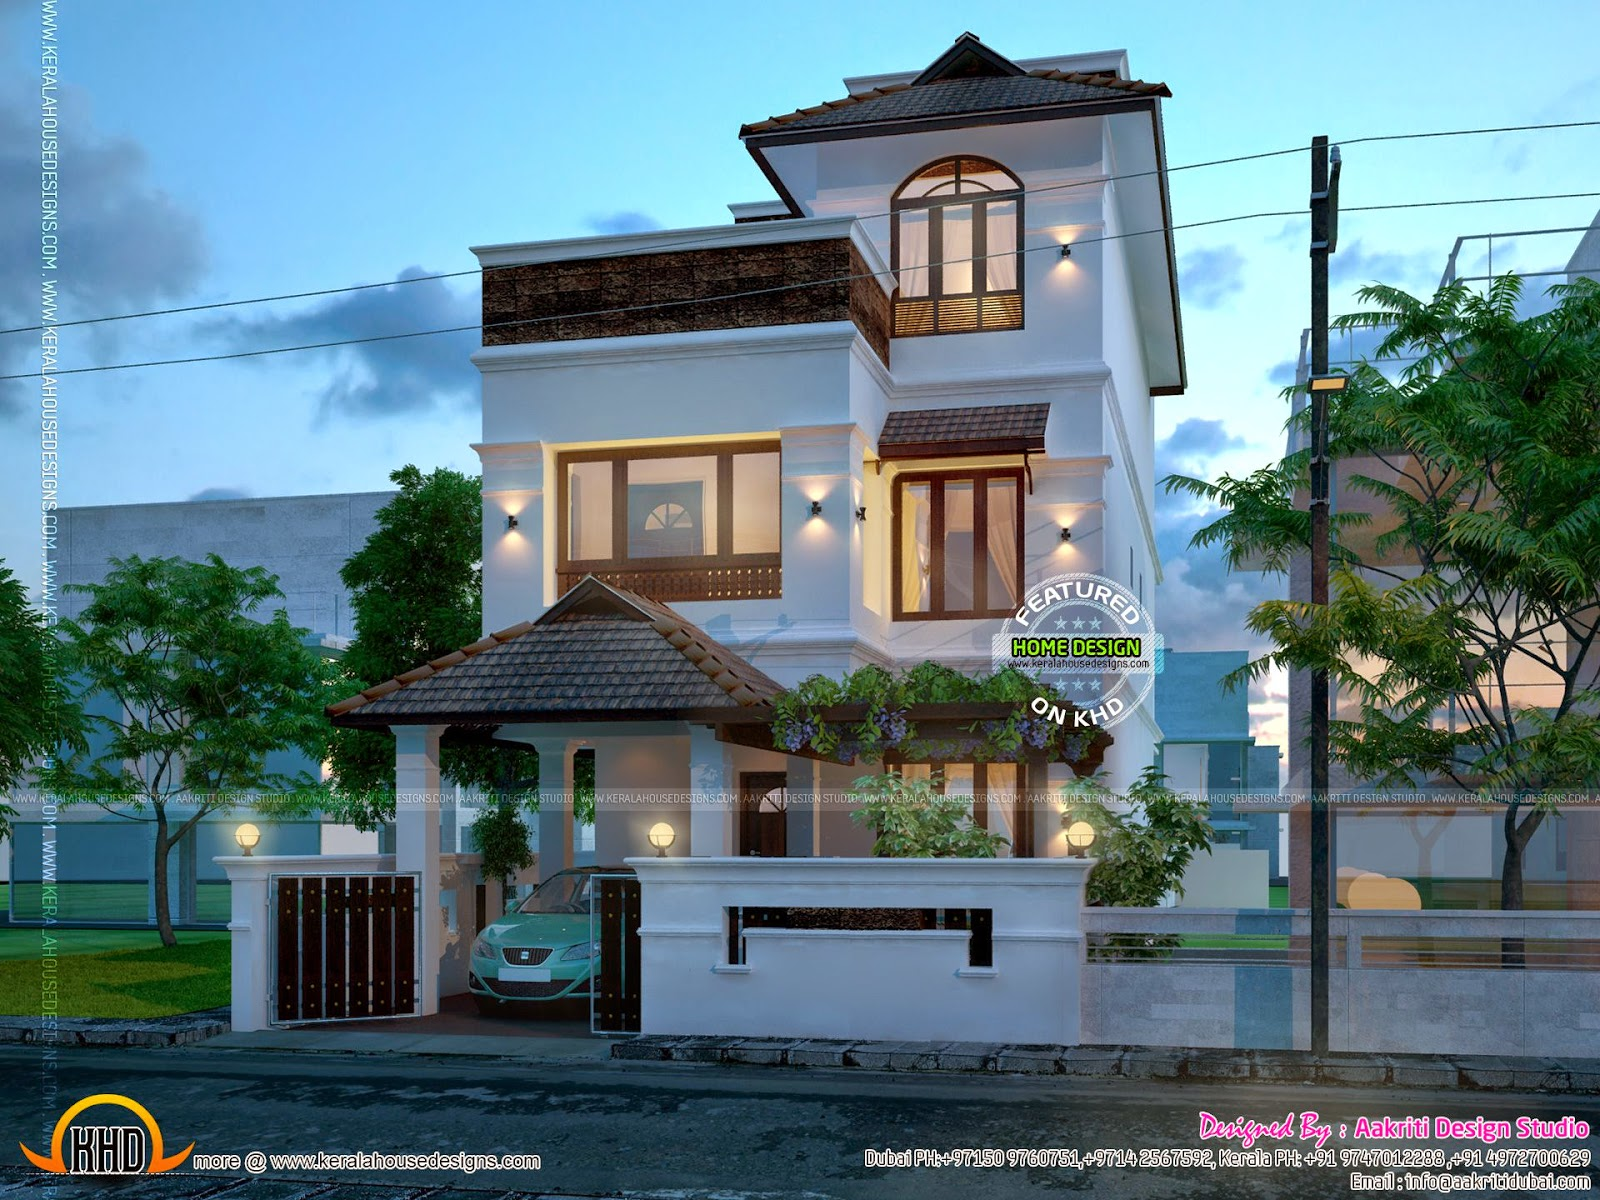 New house design kerala home design and floor plans for New home designs